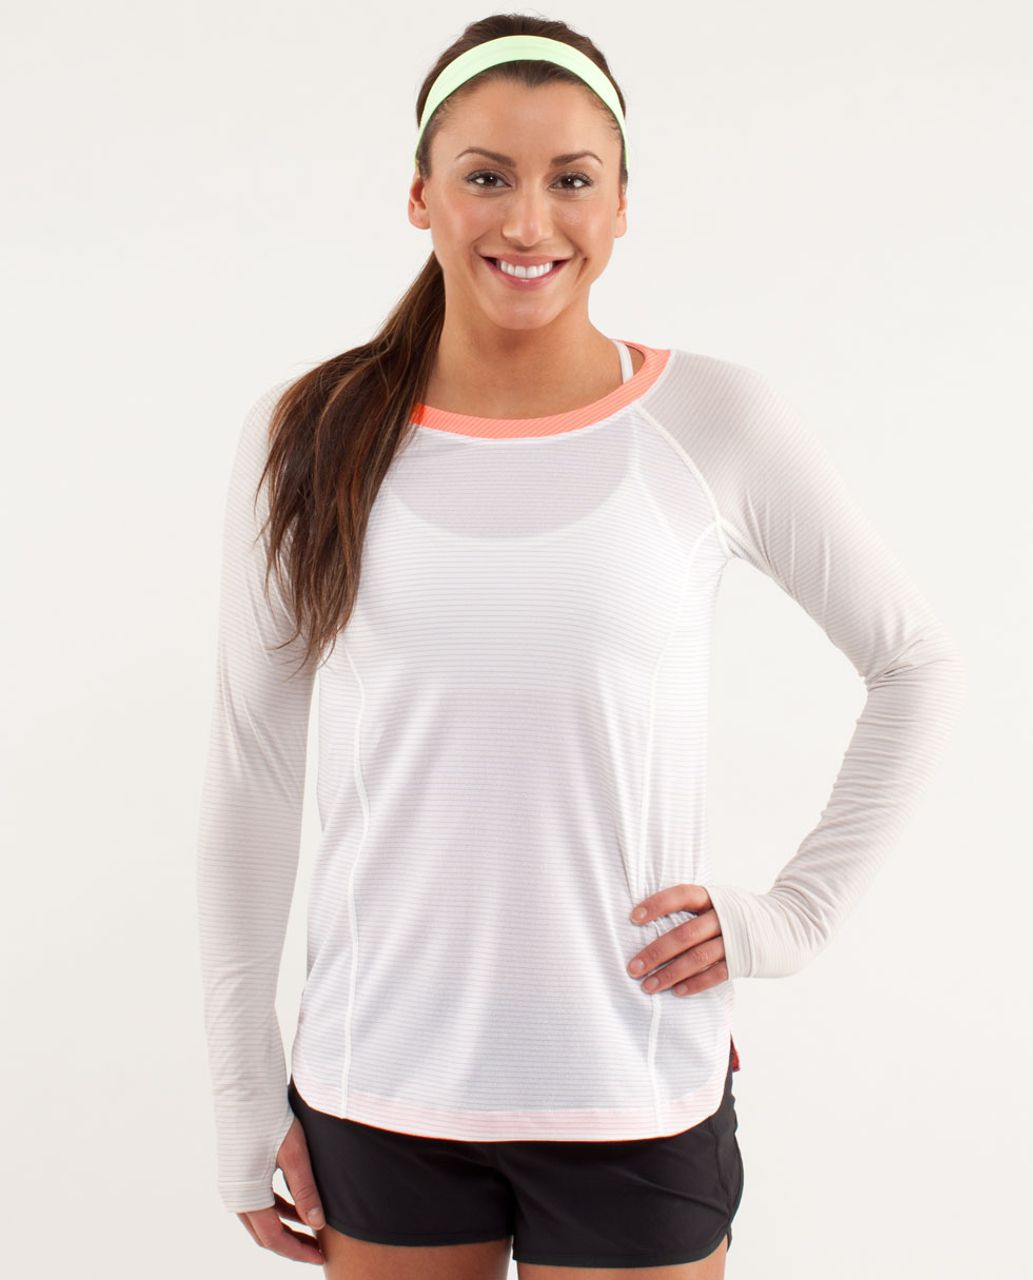 Lululemon Run:  Turn It Up Long Sleeve - White / Dune / Pop Orange